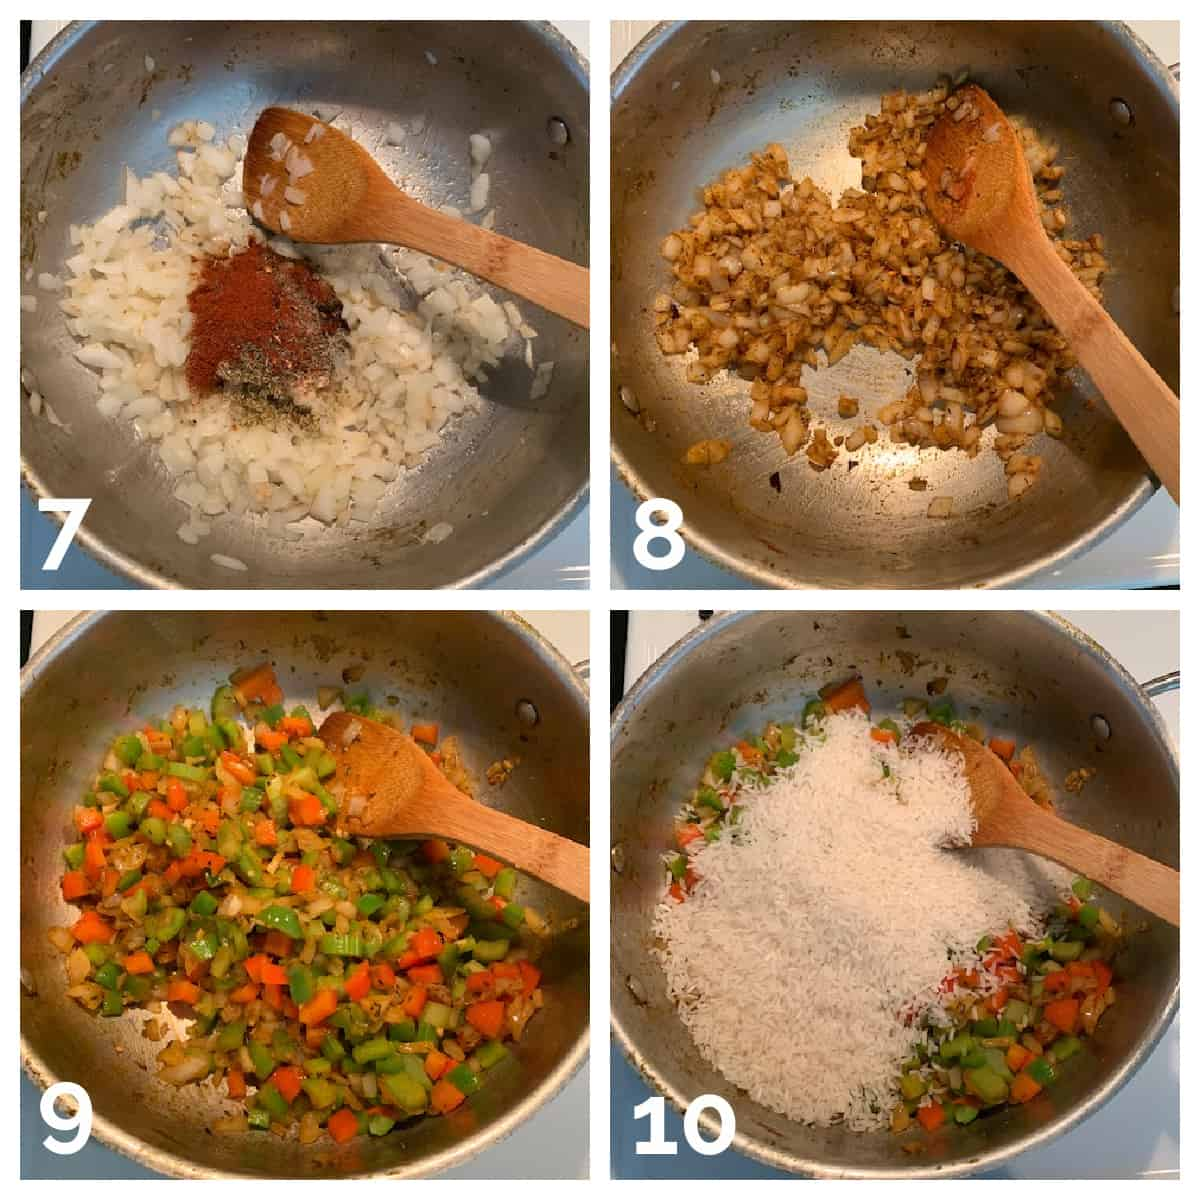 4 photo collage of cooking veggies and spices and adding rice.